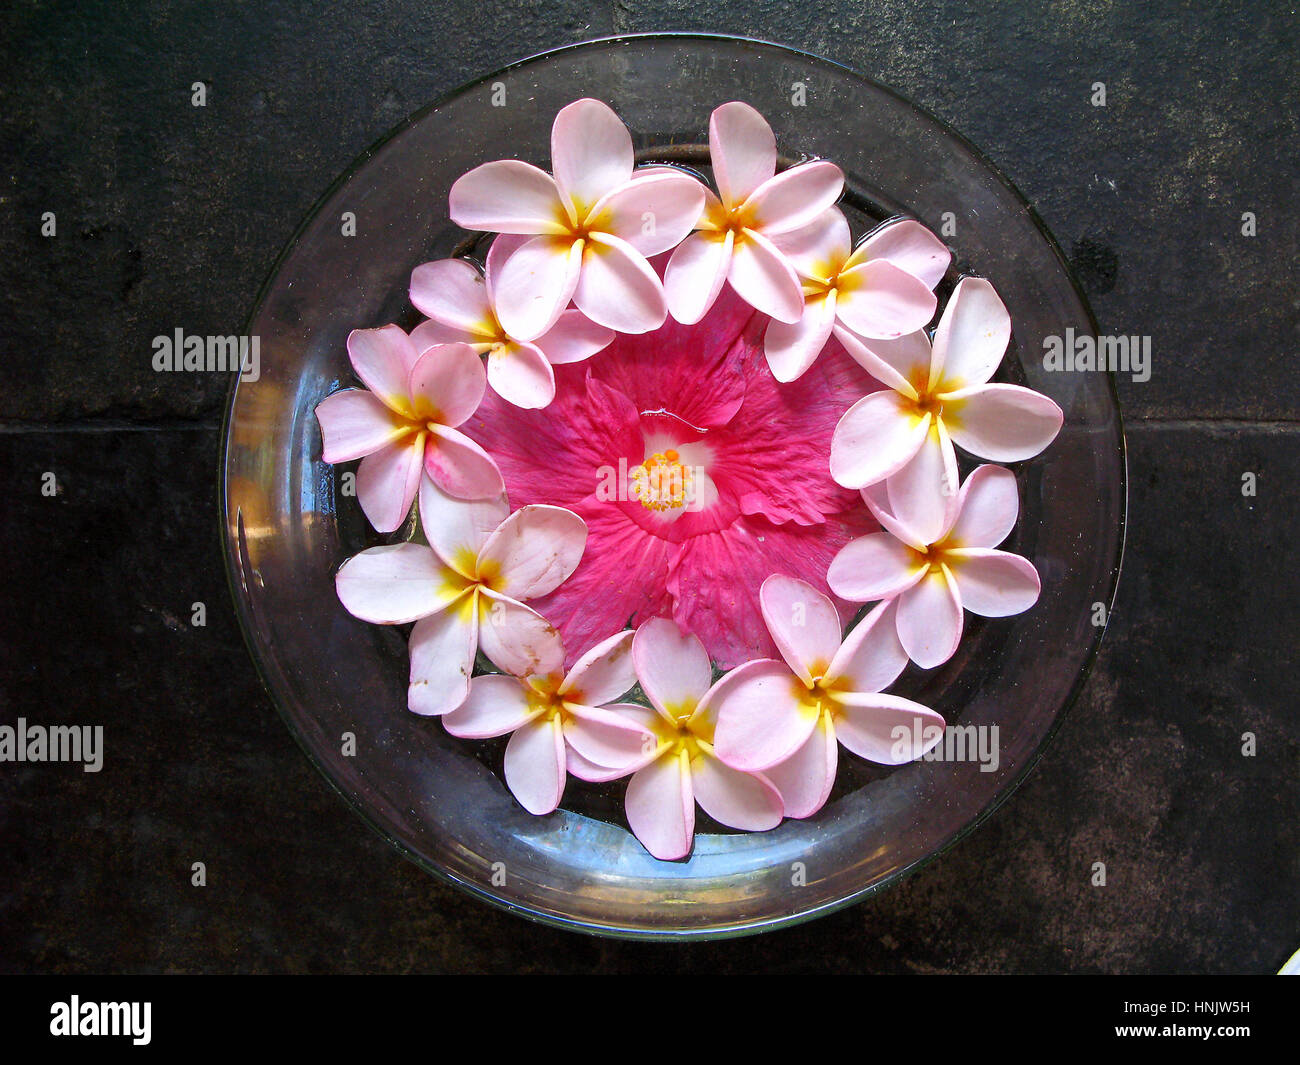 Wellness area blossom bowl with lotus flower rose and red colour wellness area blossom bowl with lotus flower rose and red colour oberoi luxushotel mauritius spa dish with blossoms the oberoi izmirmasajfo